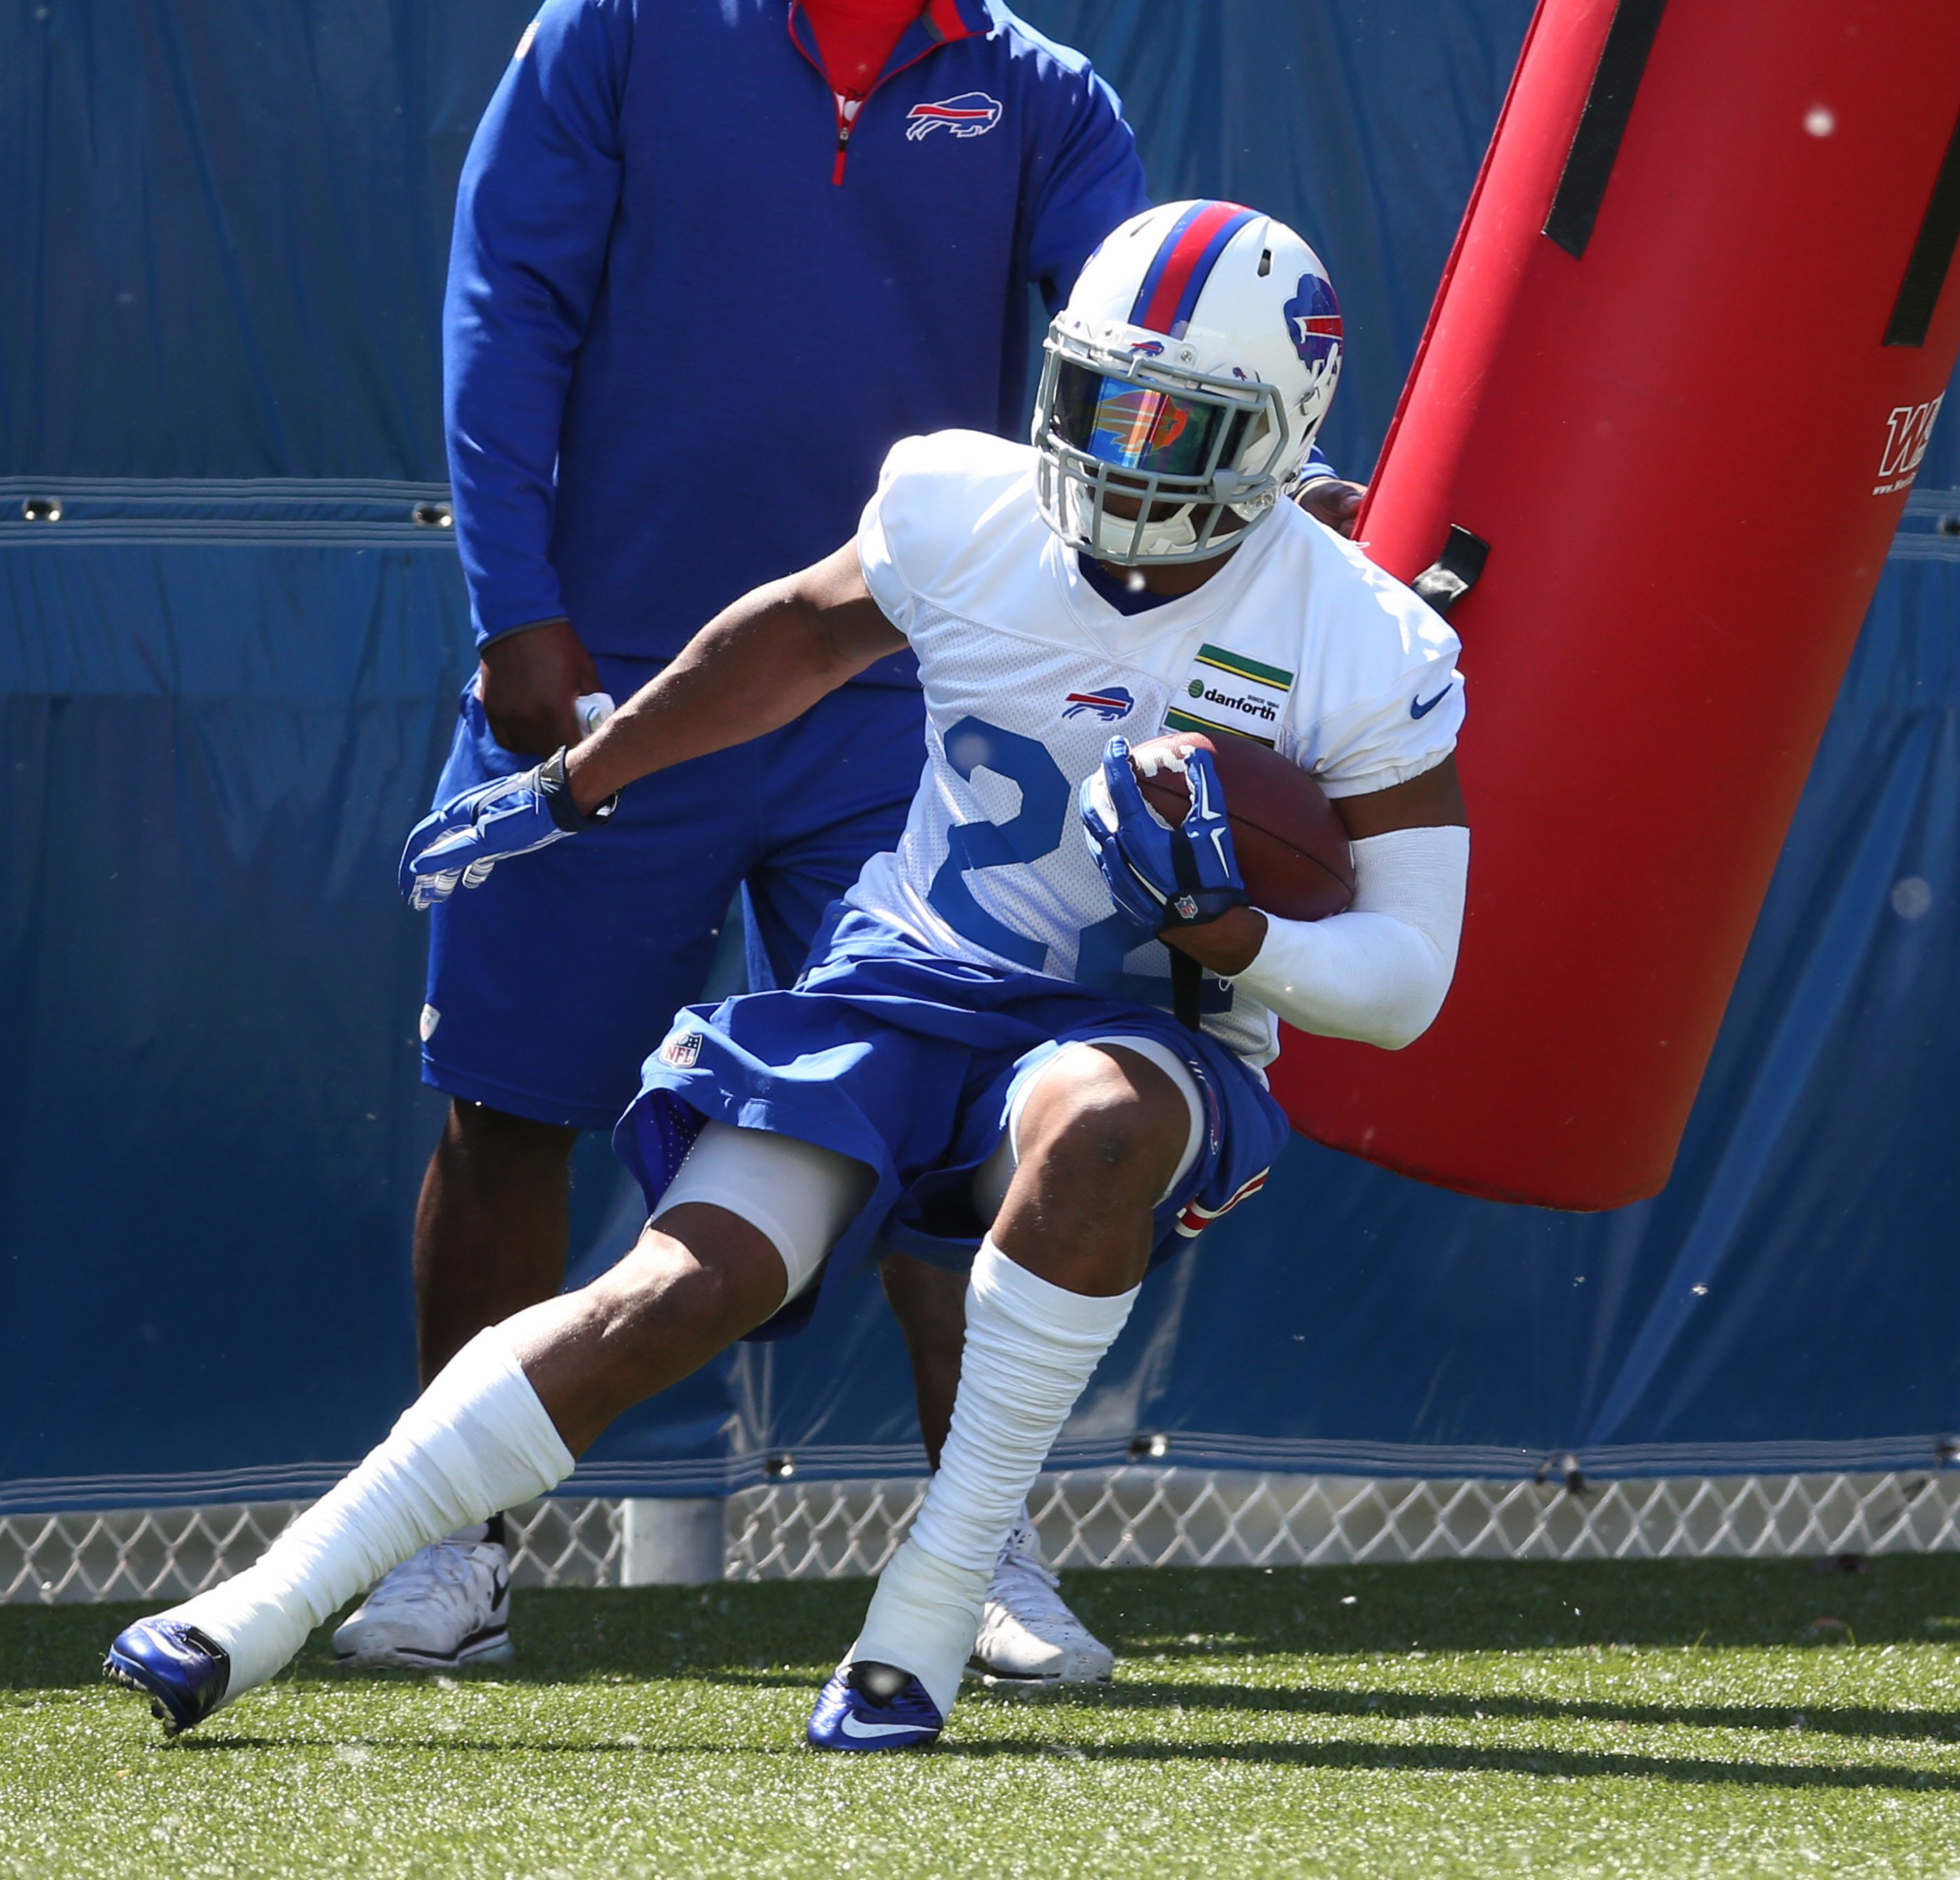 Buffalo Bills running back Fred Jackson has been his usual steady self during OTA practices this spring.